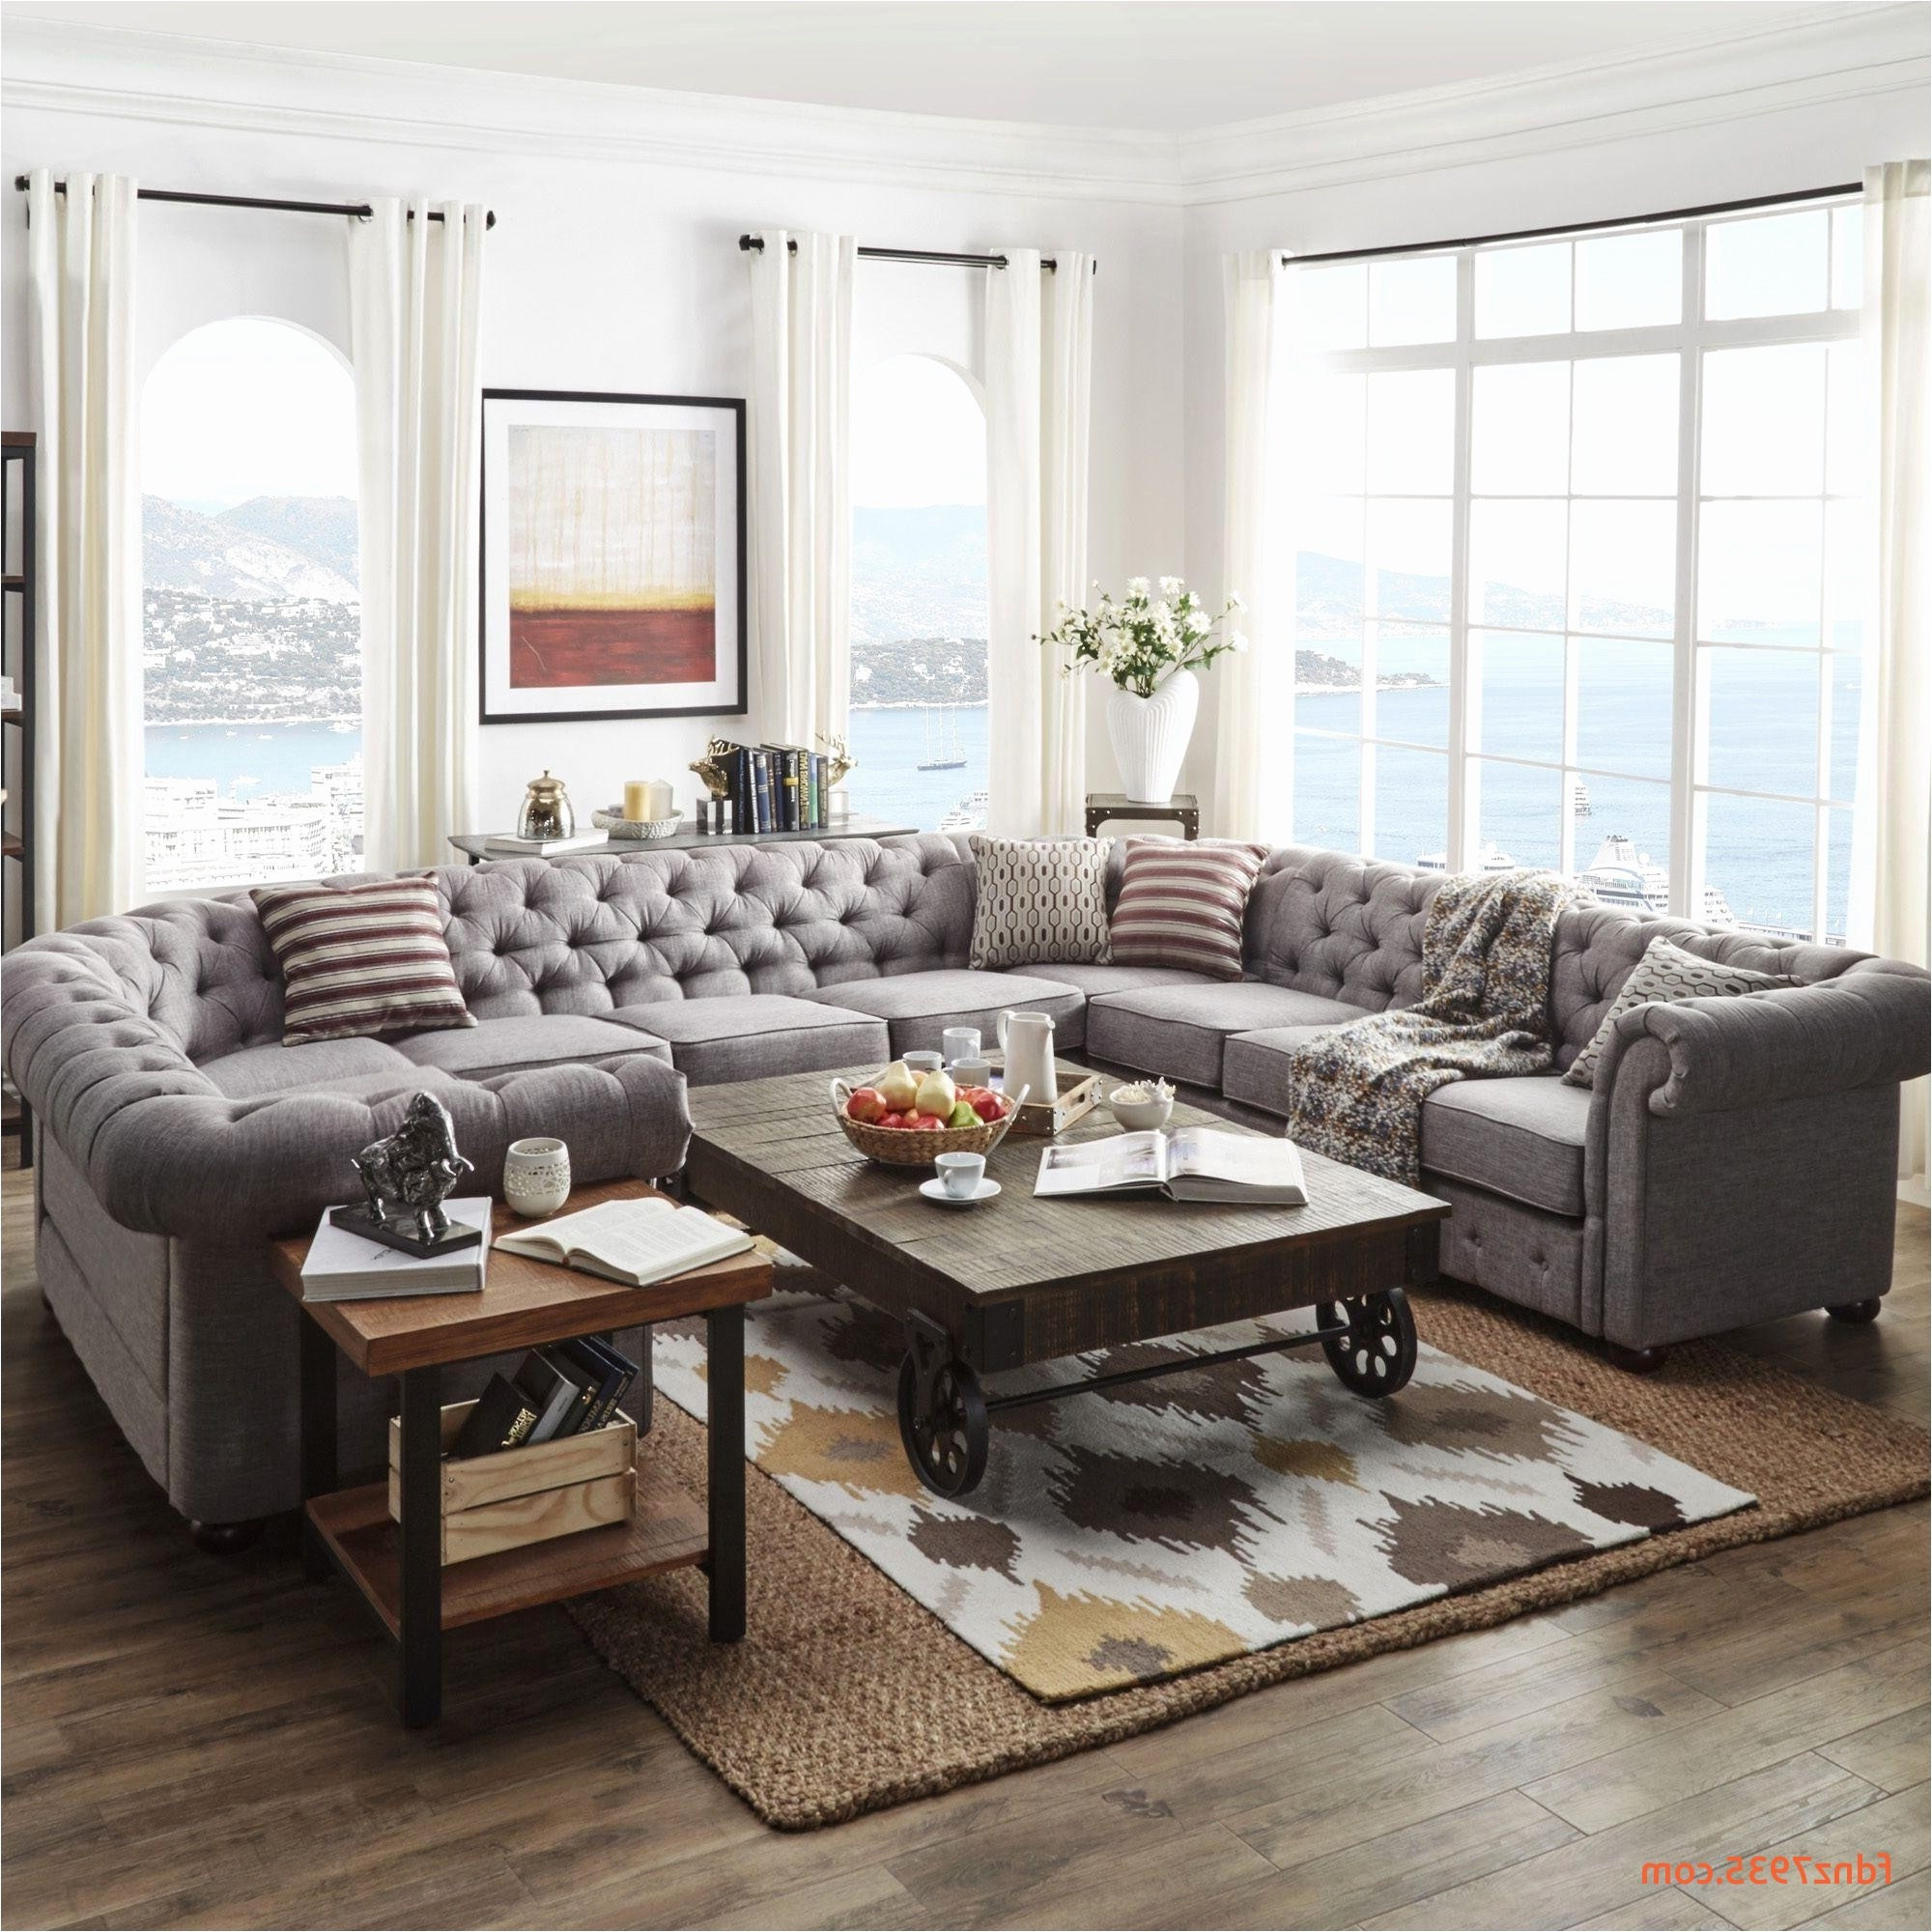 Best And Newest Round Sofa Chair Living Room Furniture Together Luxury Living Room Regarding Round Sofa Chair Living Room Furniture (Gallery 10 of 20)